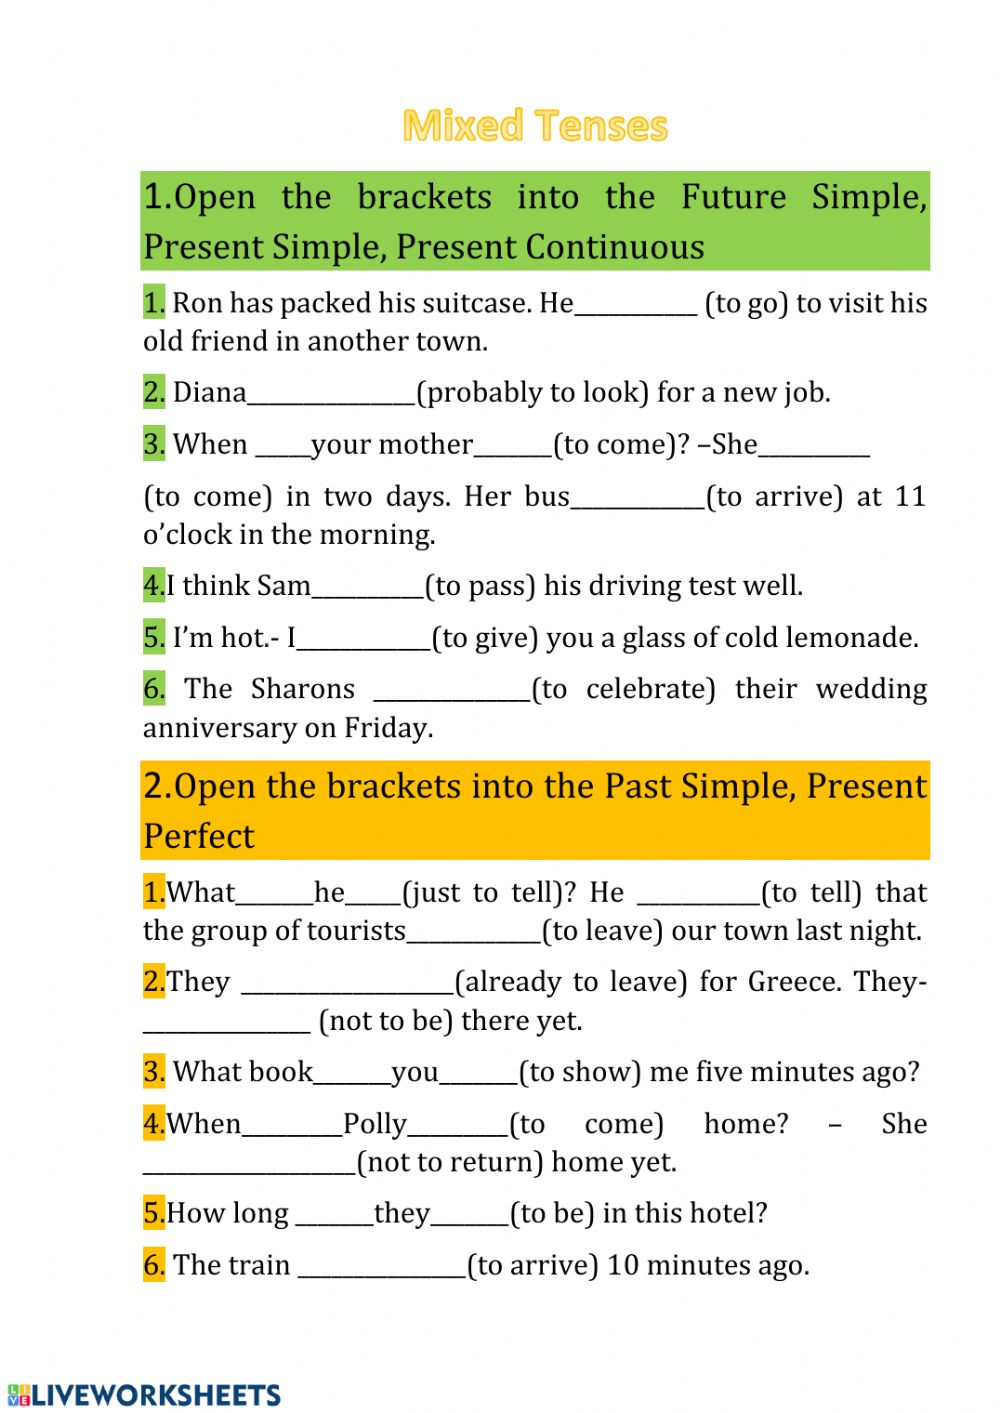 hight resolution of Mixed Tenses online worksheet